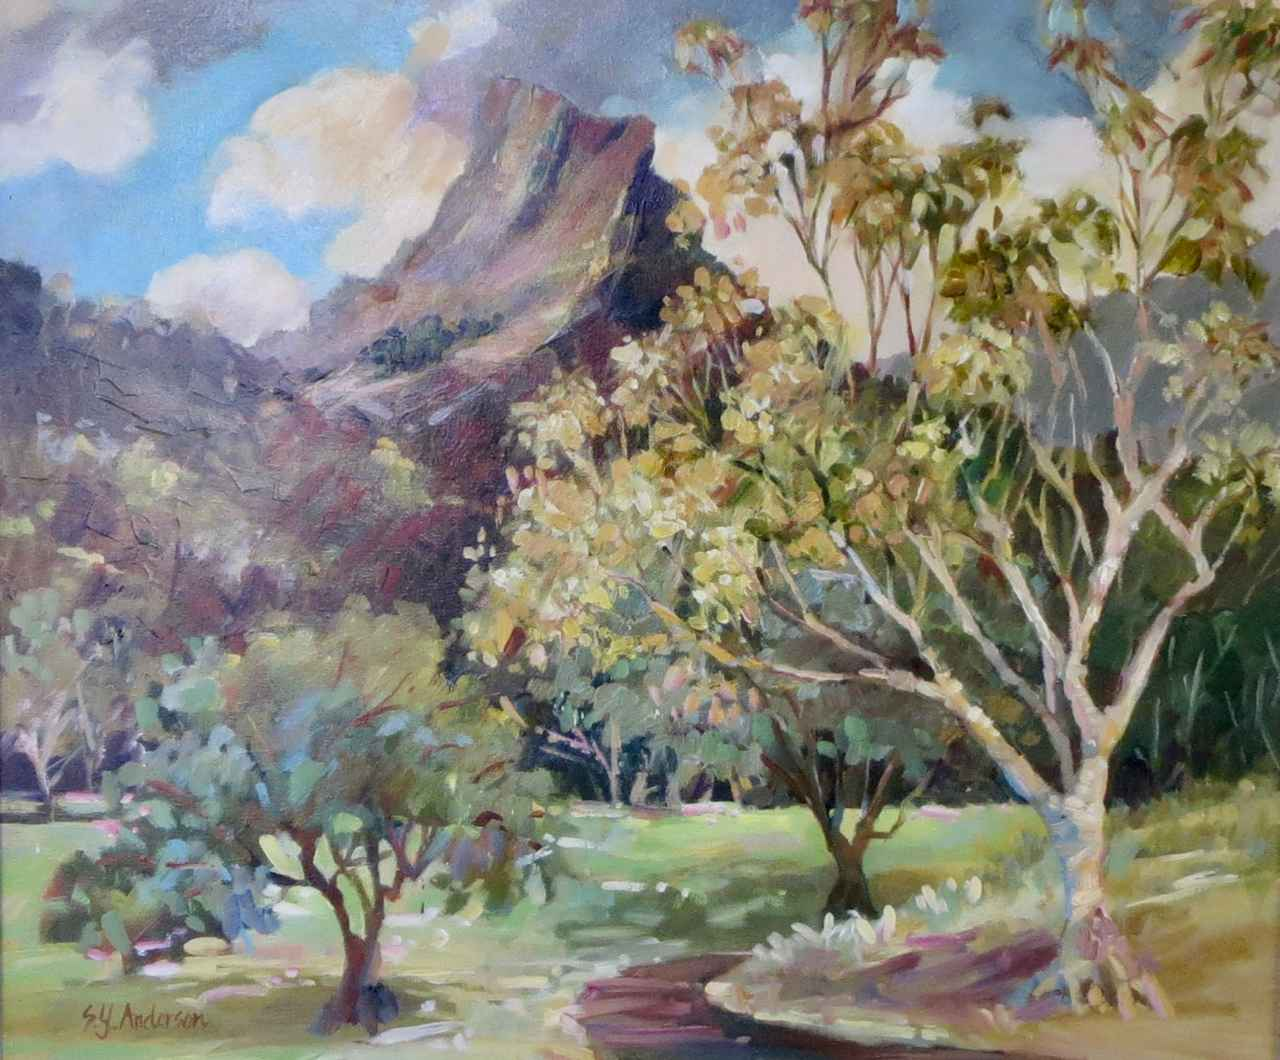 Maunawili Park by  Susie Anderson - Masterpiece Online